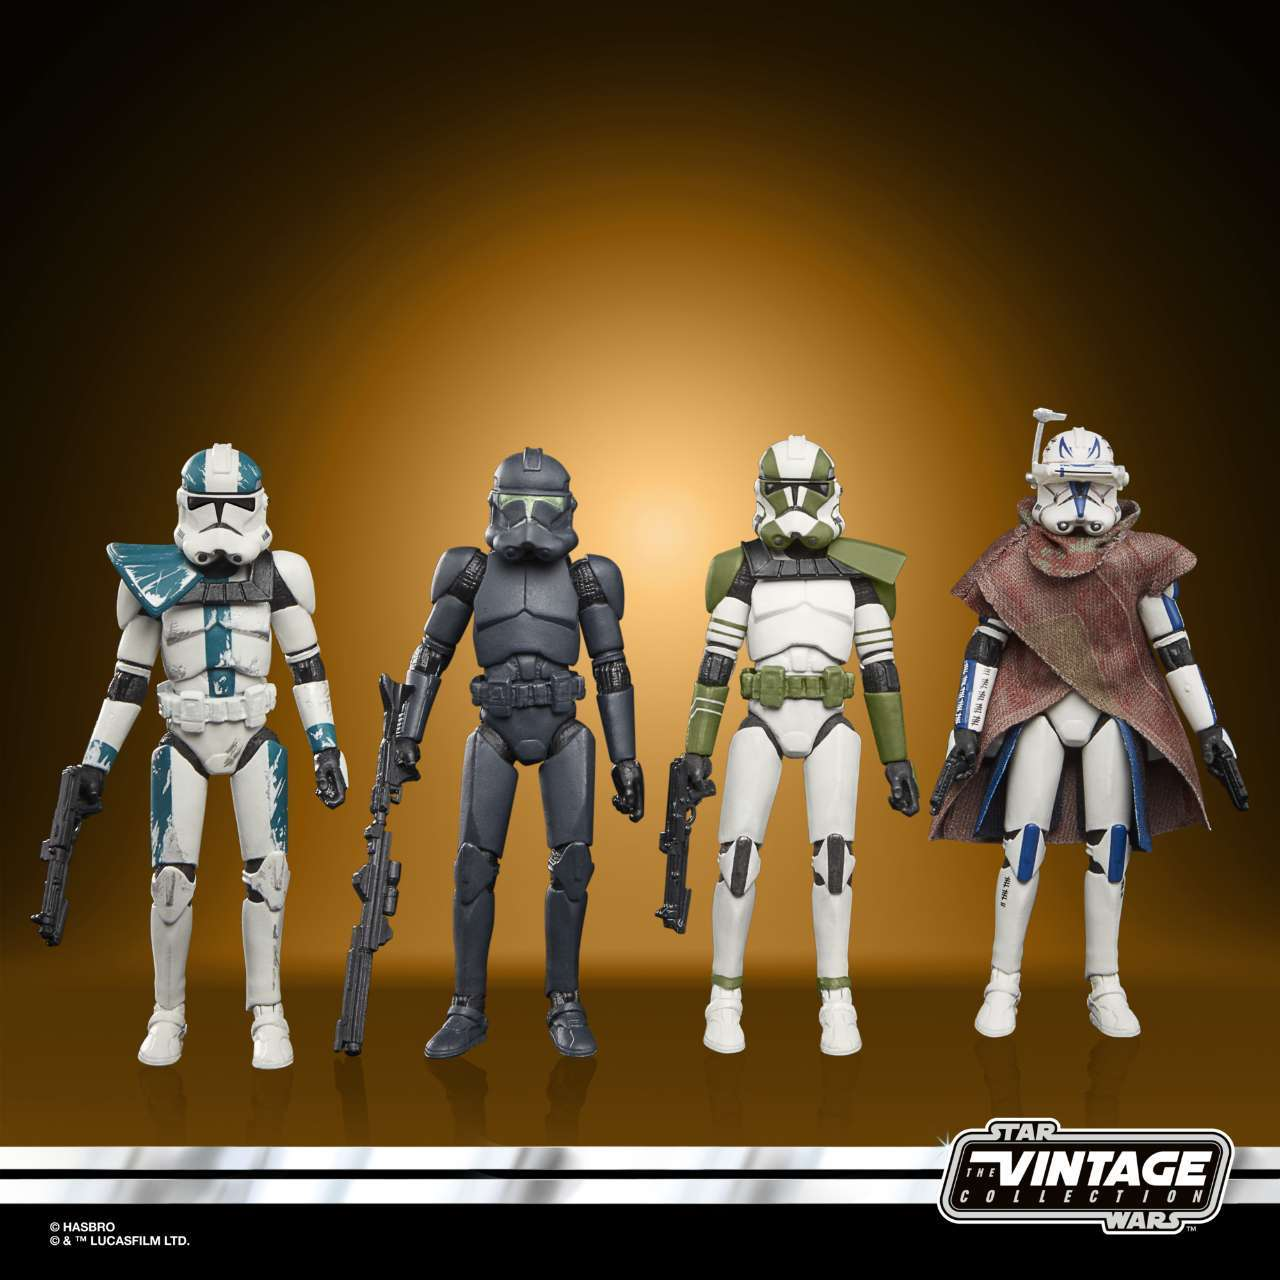 STAR WARS THE VINTAGE COLLECTION STAR WARS THE BAD BATCH Figure 4-Pack - oop (1)